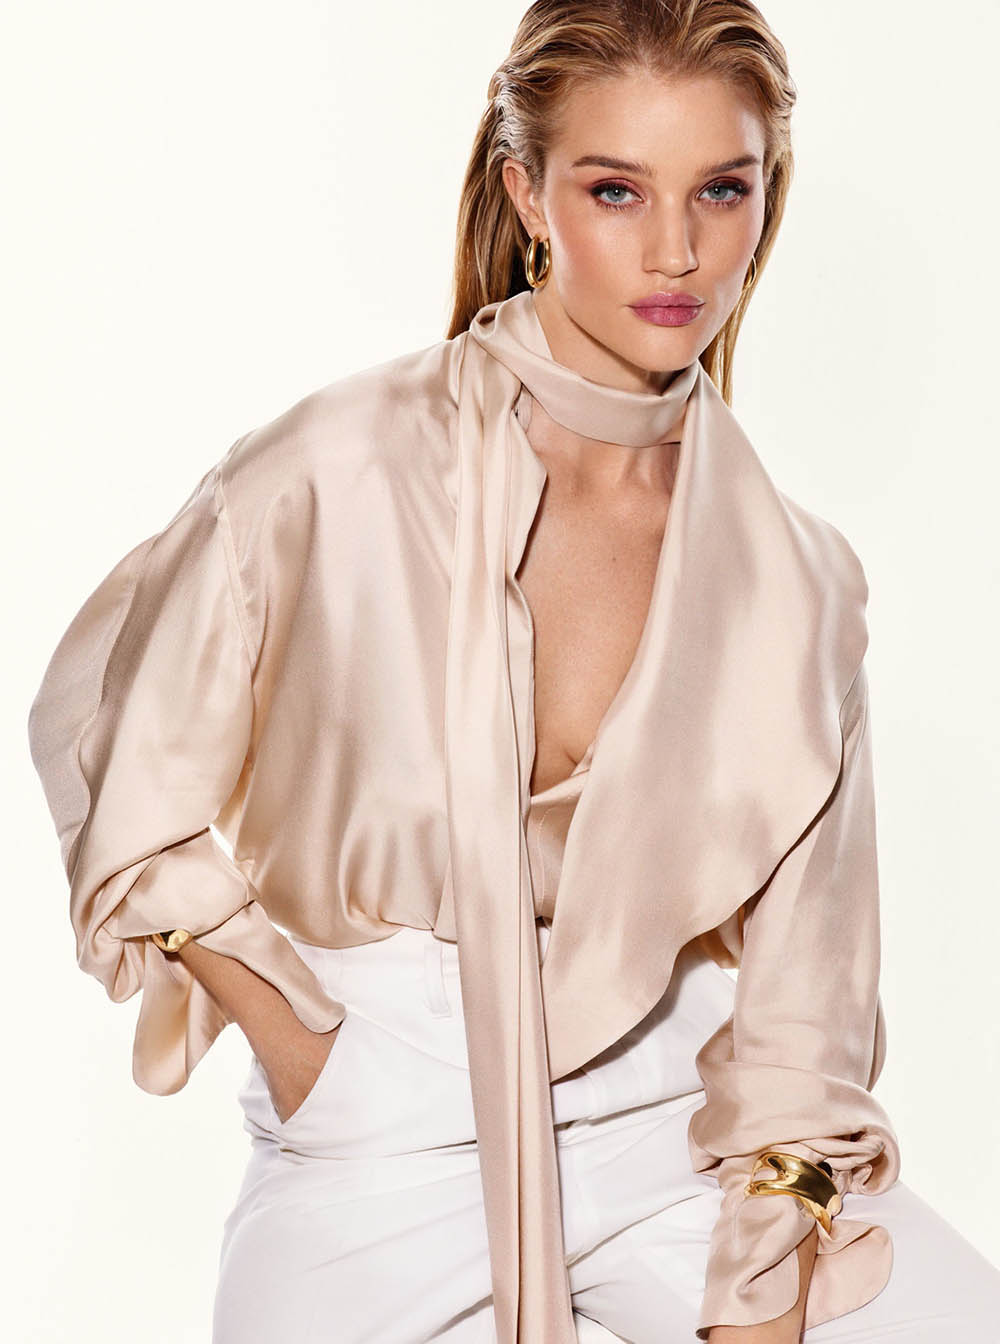 Rosie Huntington-Whiteley covers The Sunday Times Style January 19th, 2020 by David Ferrua